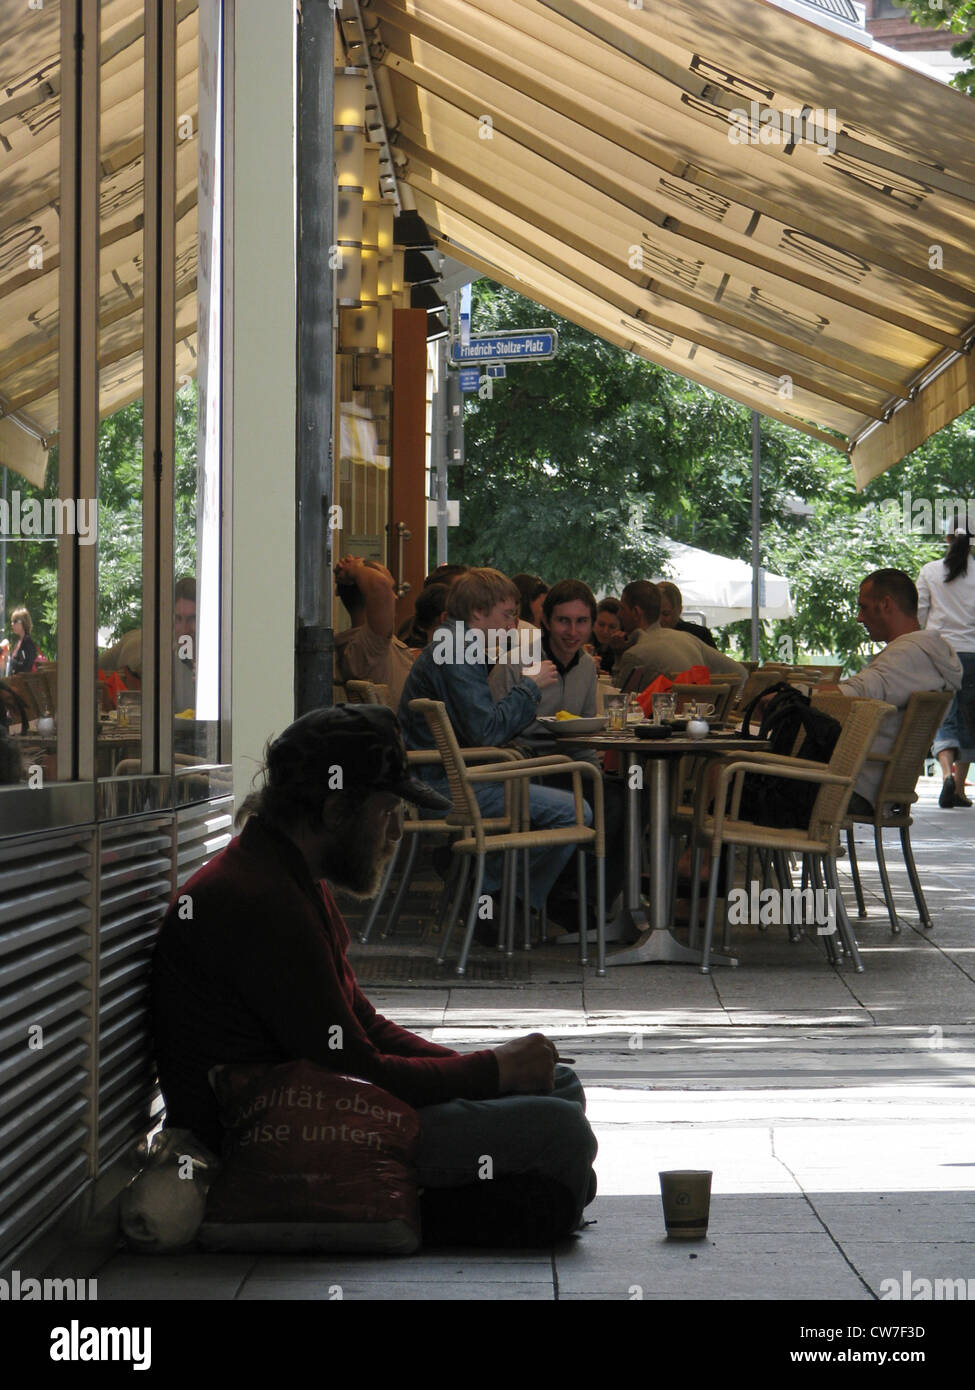 Homeless person asking for money - guests of a cafe in the background, Germany, Frankfurt - Stock Image